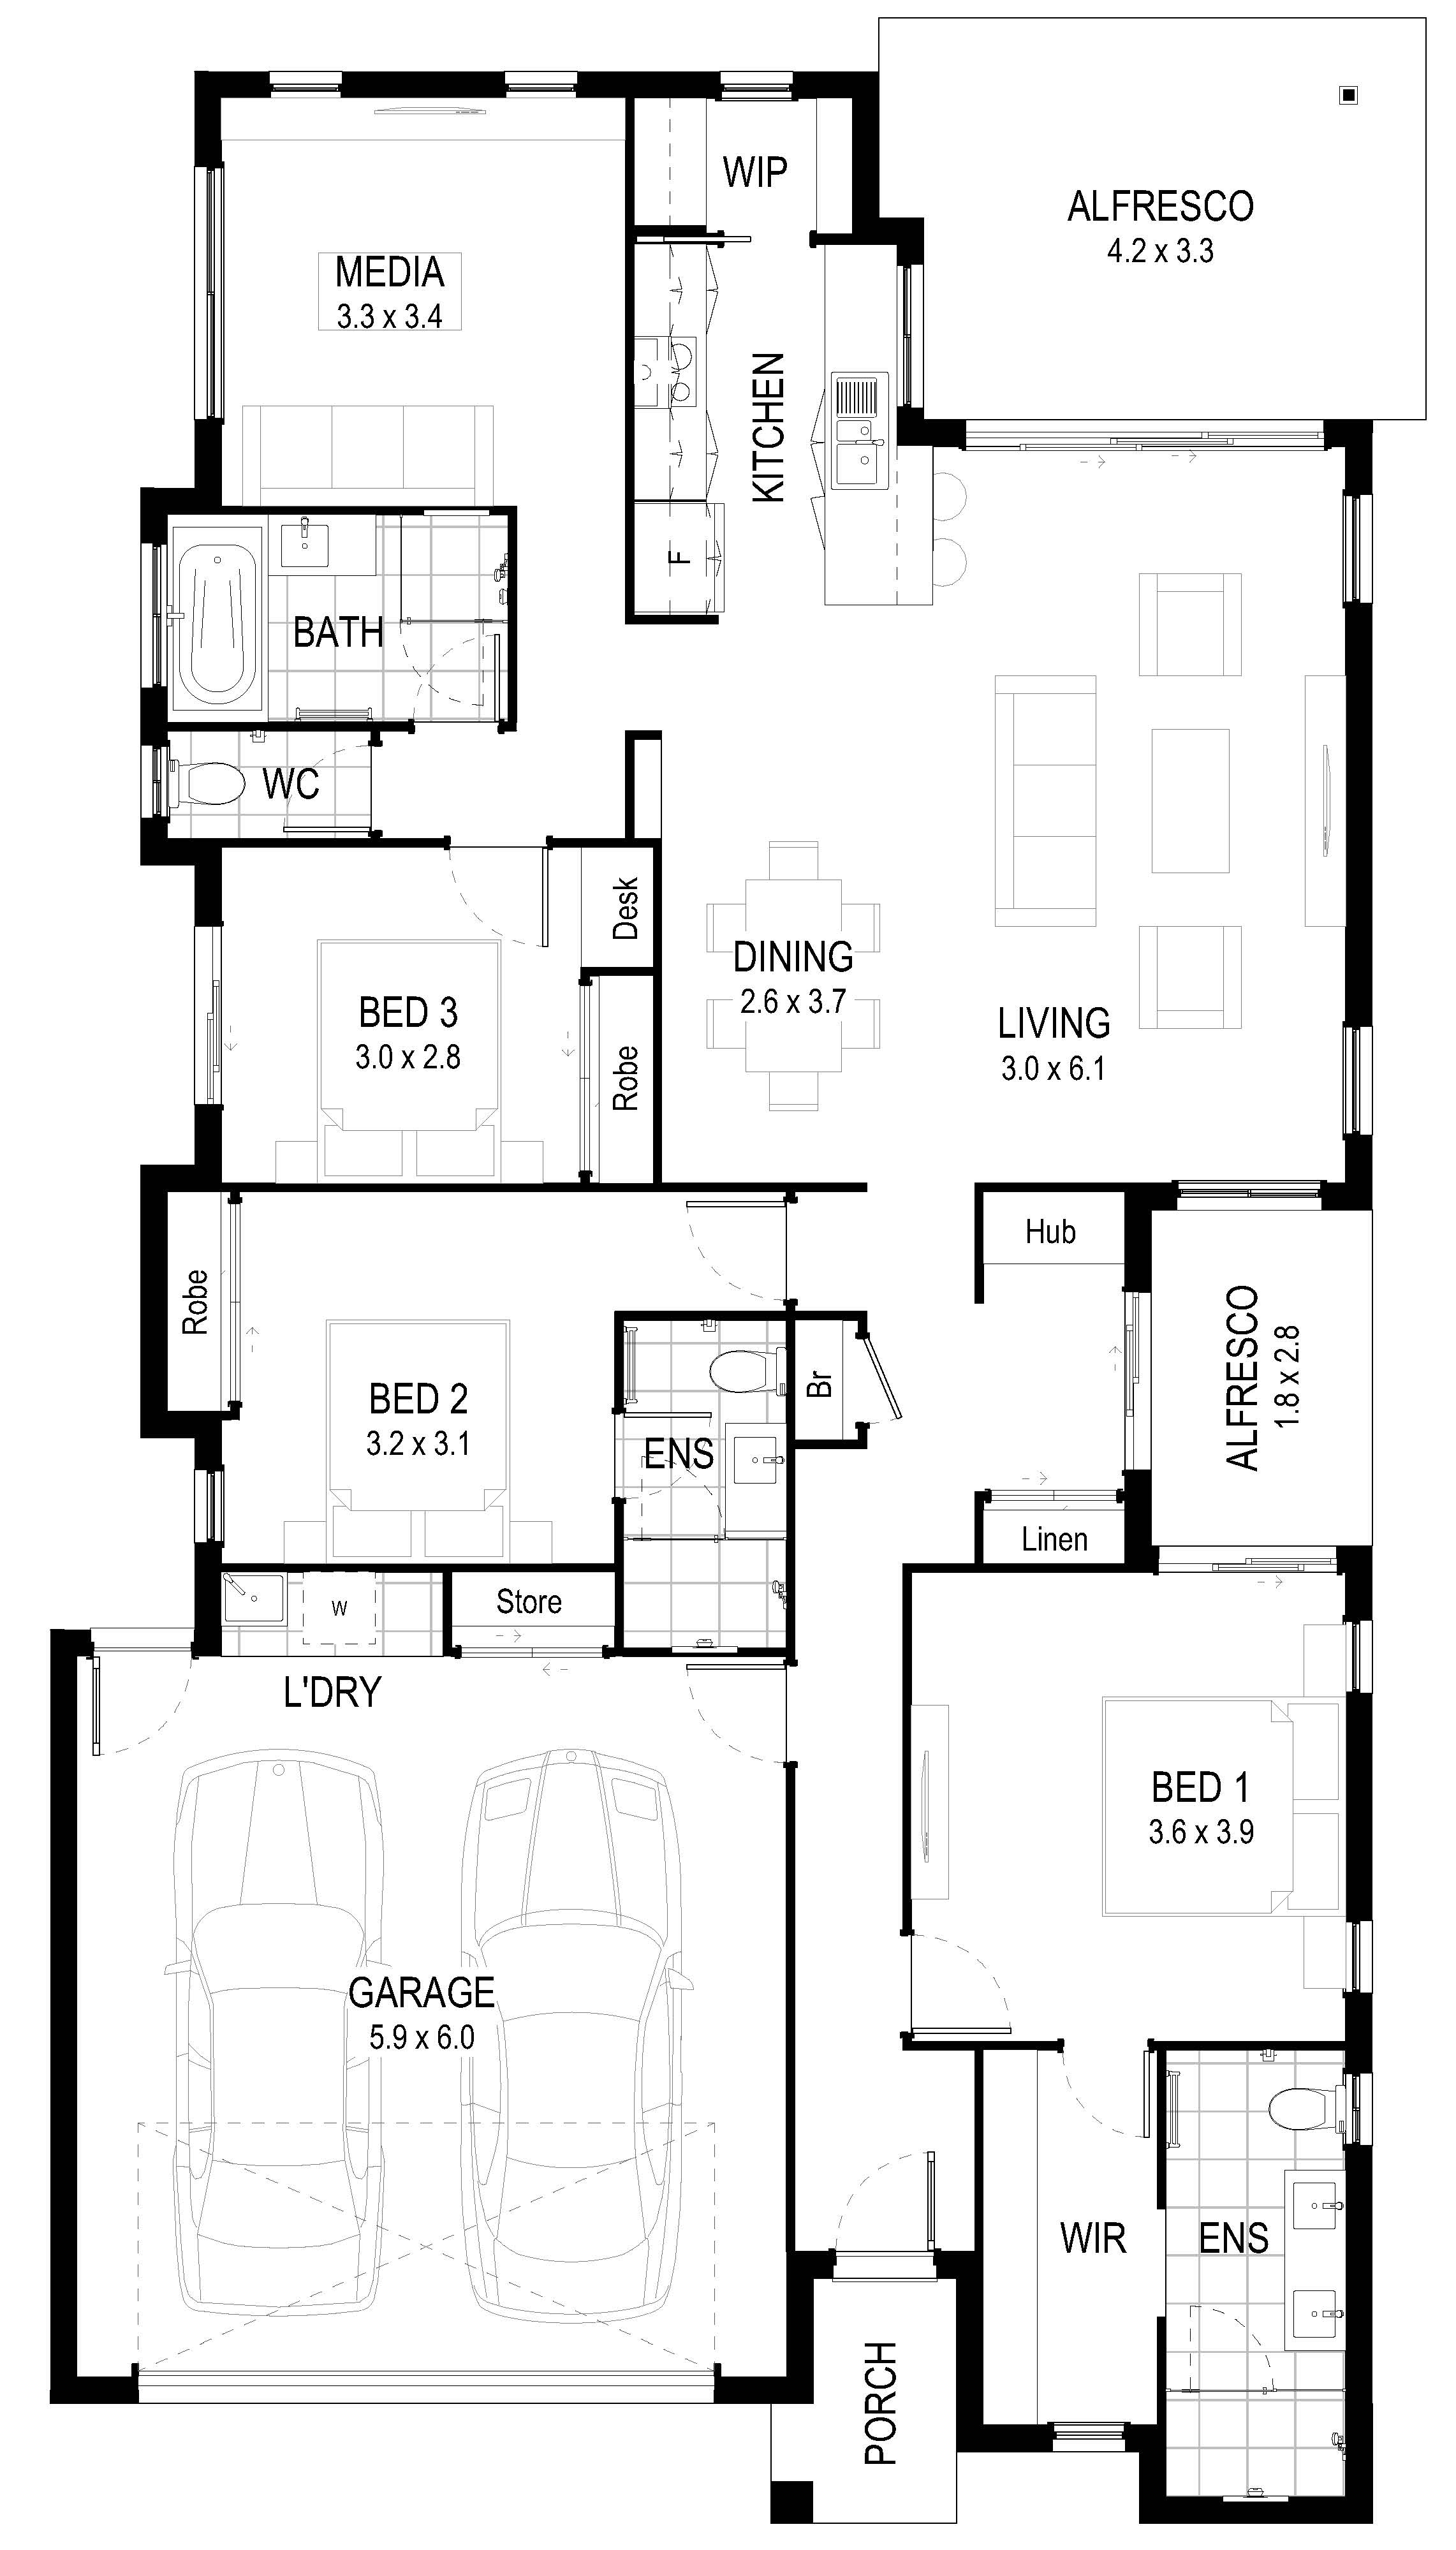 8 M Wide Home Designs Part - 40: Plans And Illustrations Are For Marketing Purposes - Dimensions And Colours  Are Provided As A Guide Only. Some Homes May Be Mirror Reversed Versions Of  This ...